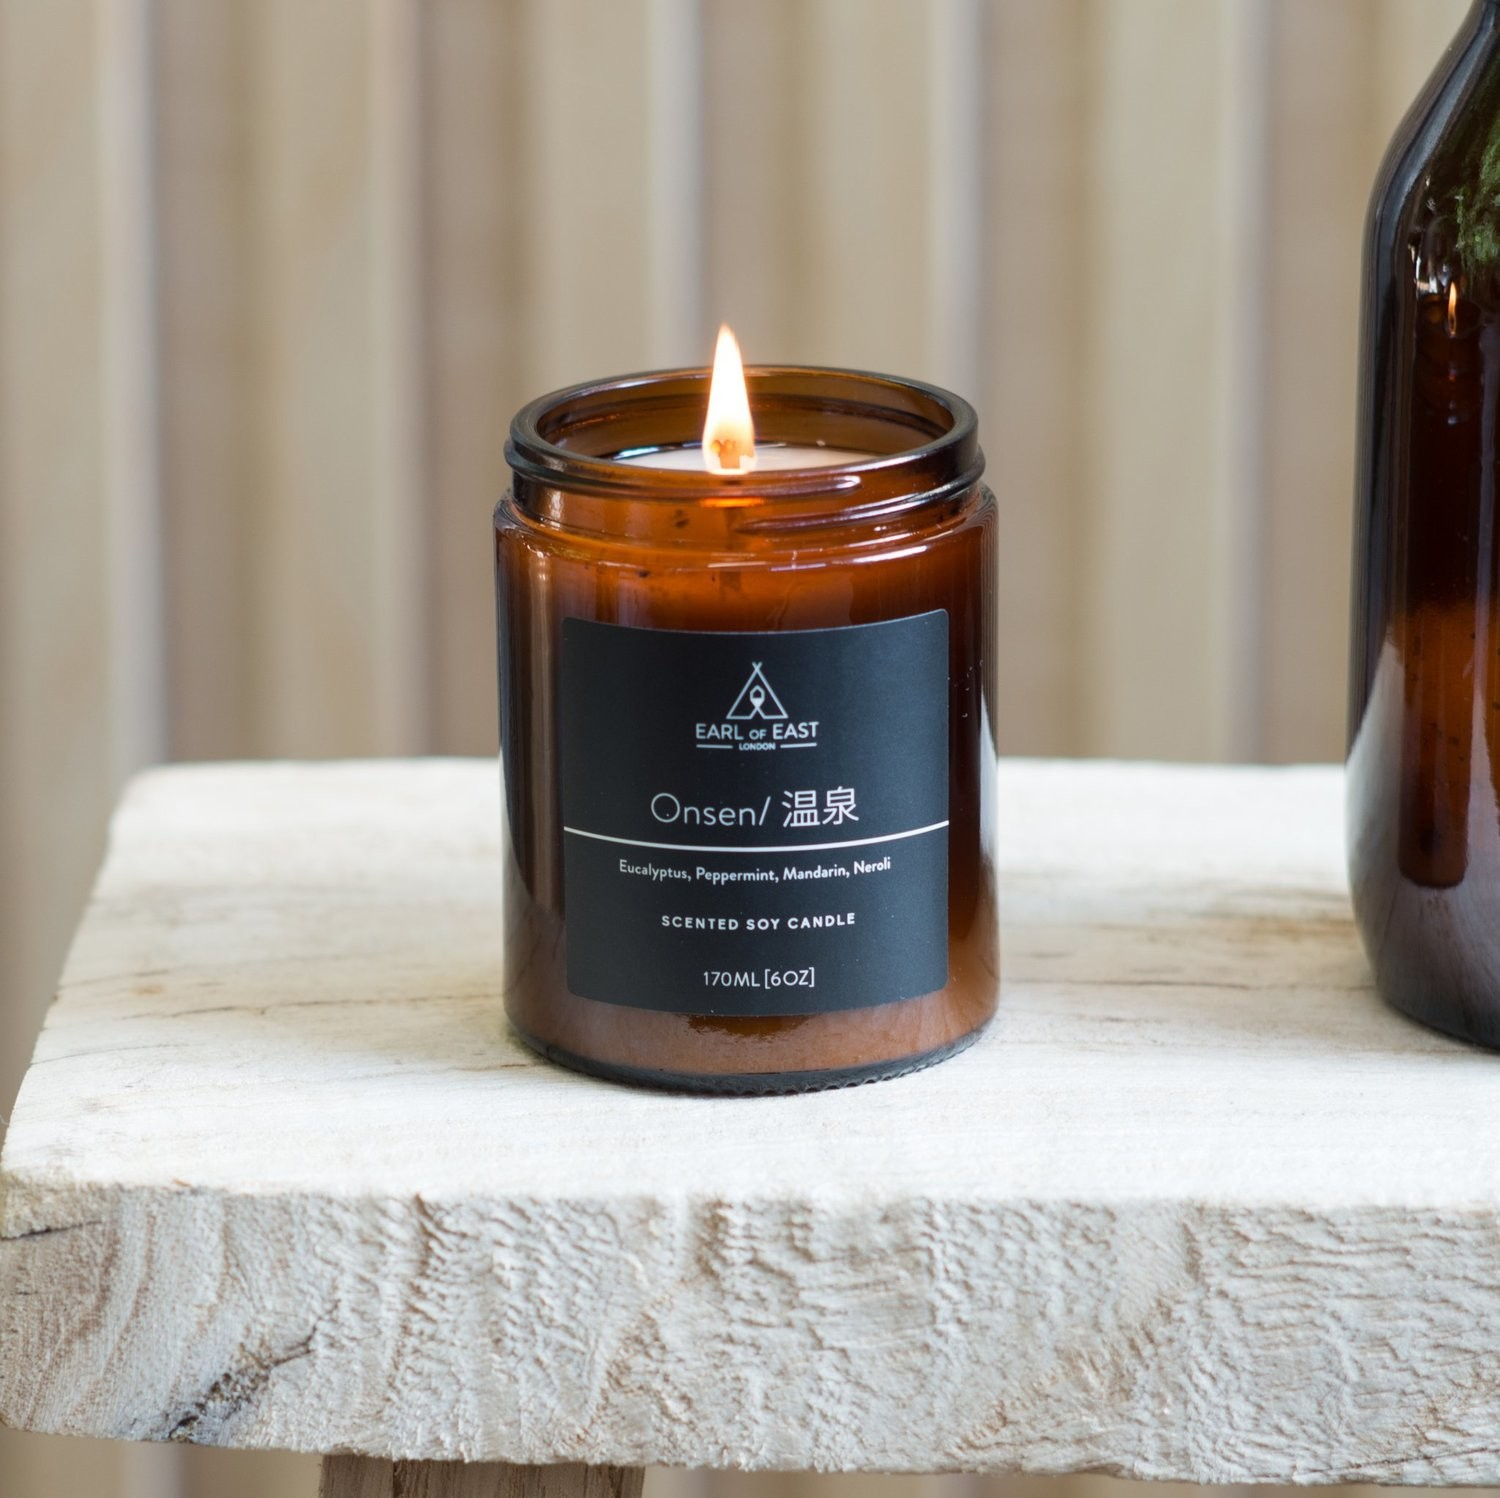 Earl of East Soy Wax Mid Size Candle - Onsen 170ml [6oz]